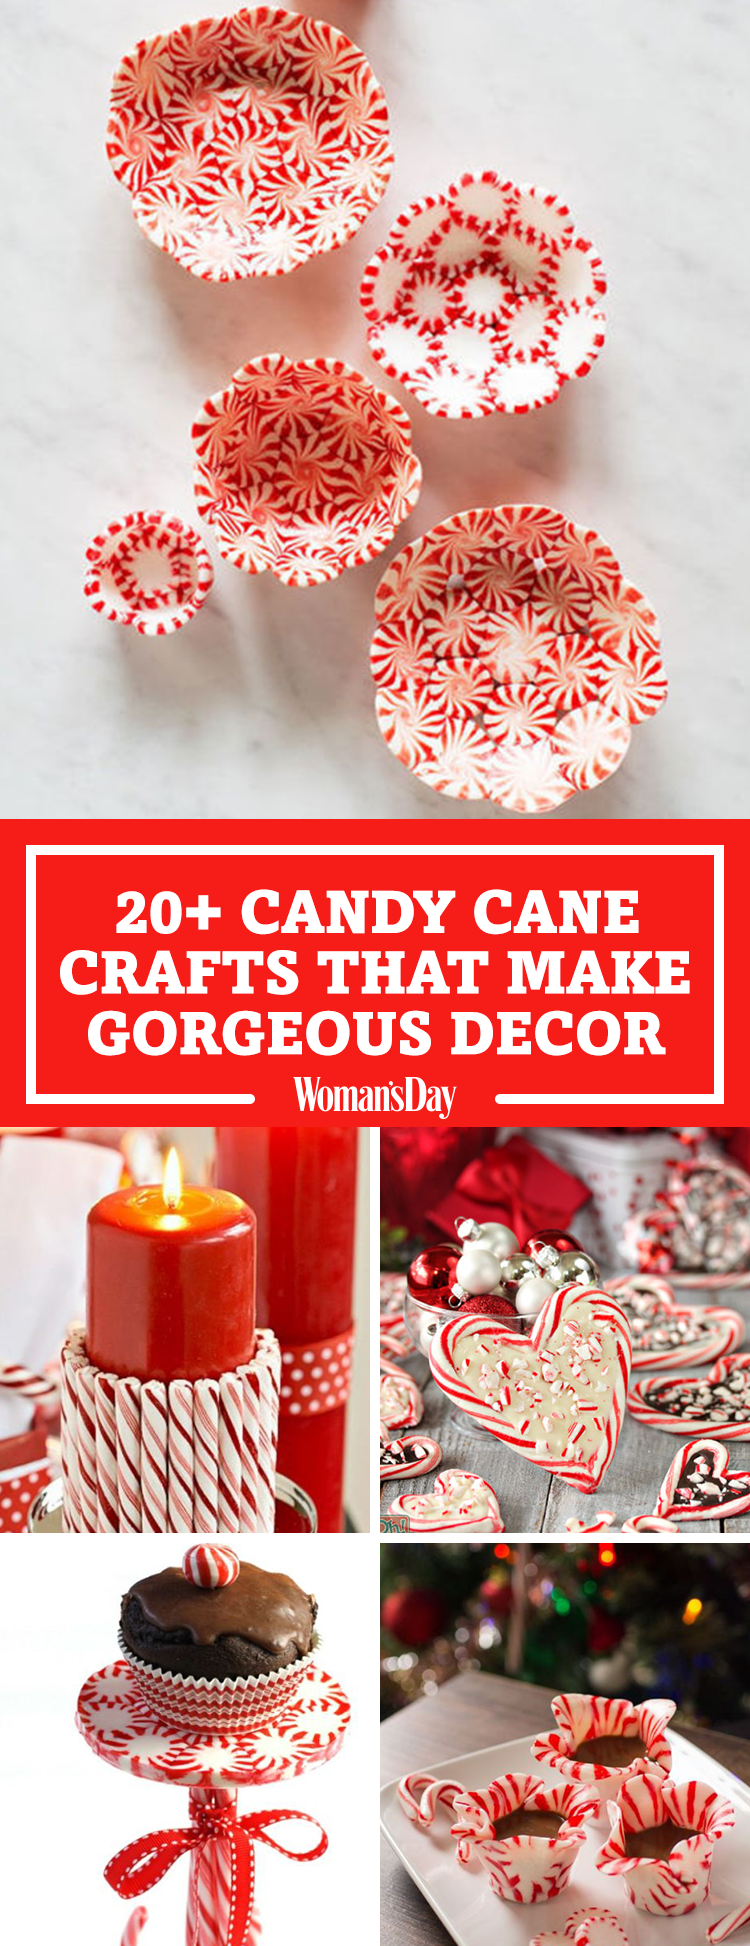 25 candy cane crafts diy decorations with candy canes for Easy candy cane crafts